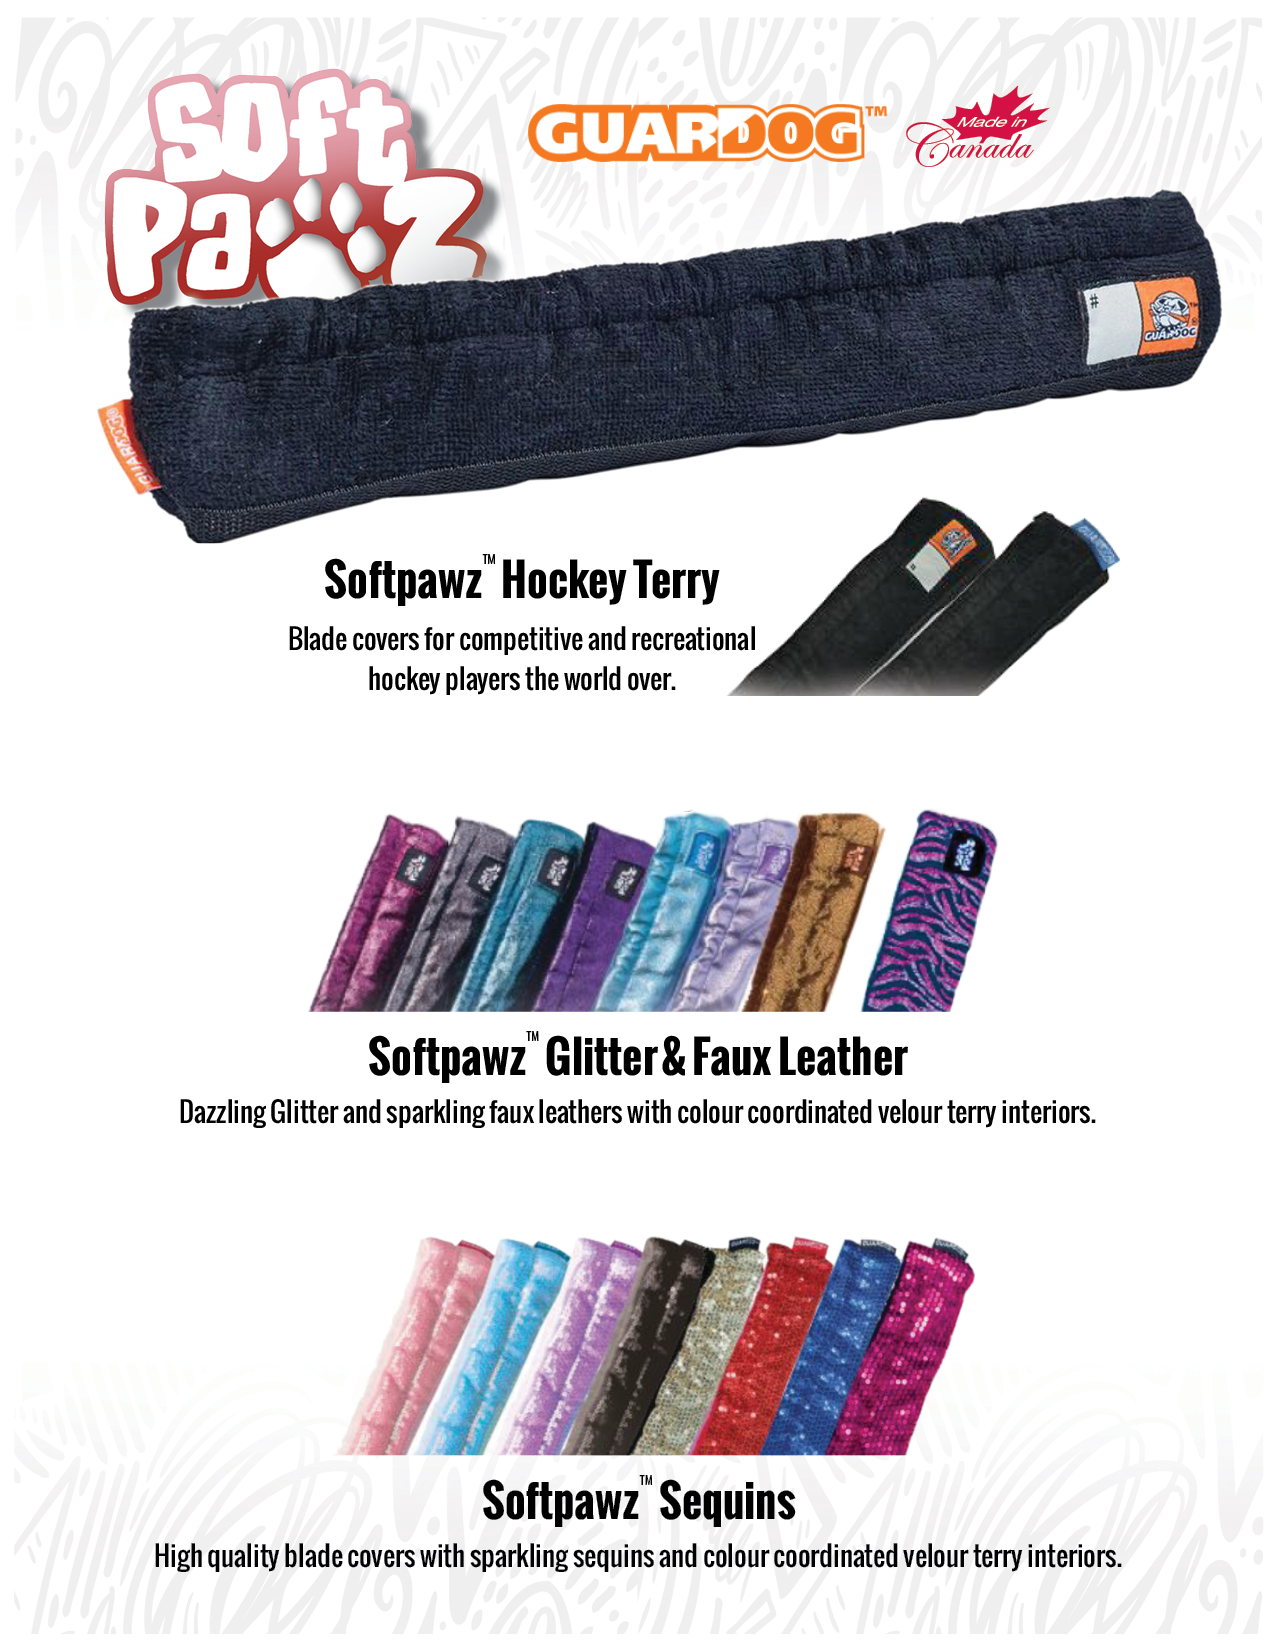 Guardog Soft Pawz hockey terry skate guard, SoftPawz Glitter & Faux Leather skate guard, SoftPawz Sequins